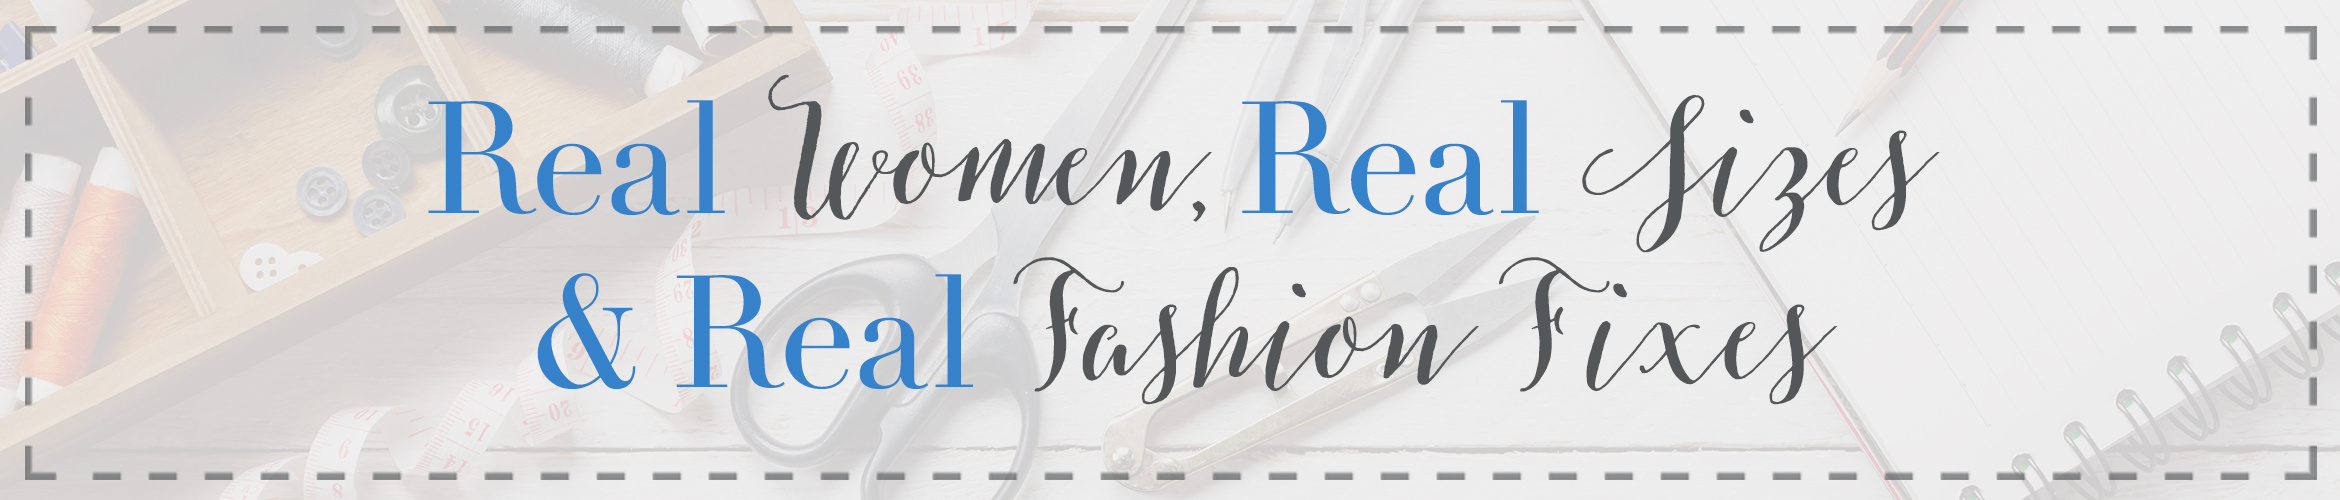 Real Women, Real Sizes & Real Fashion Fixes